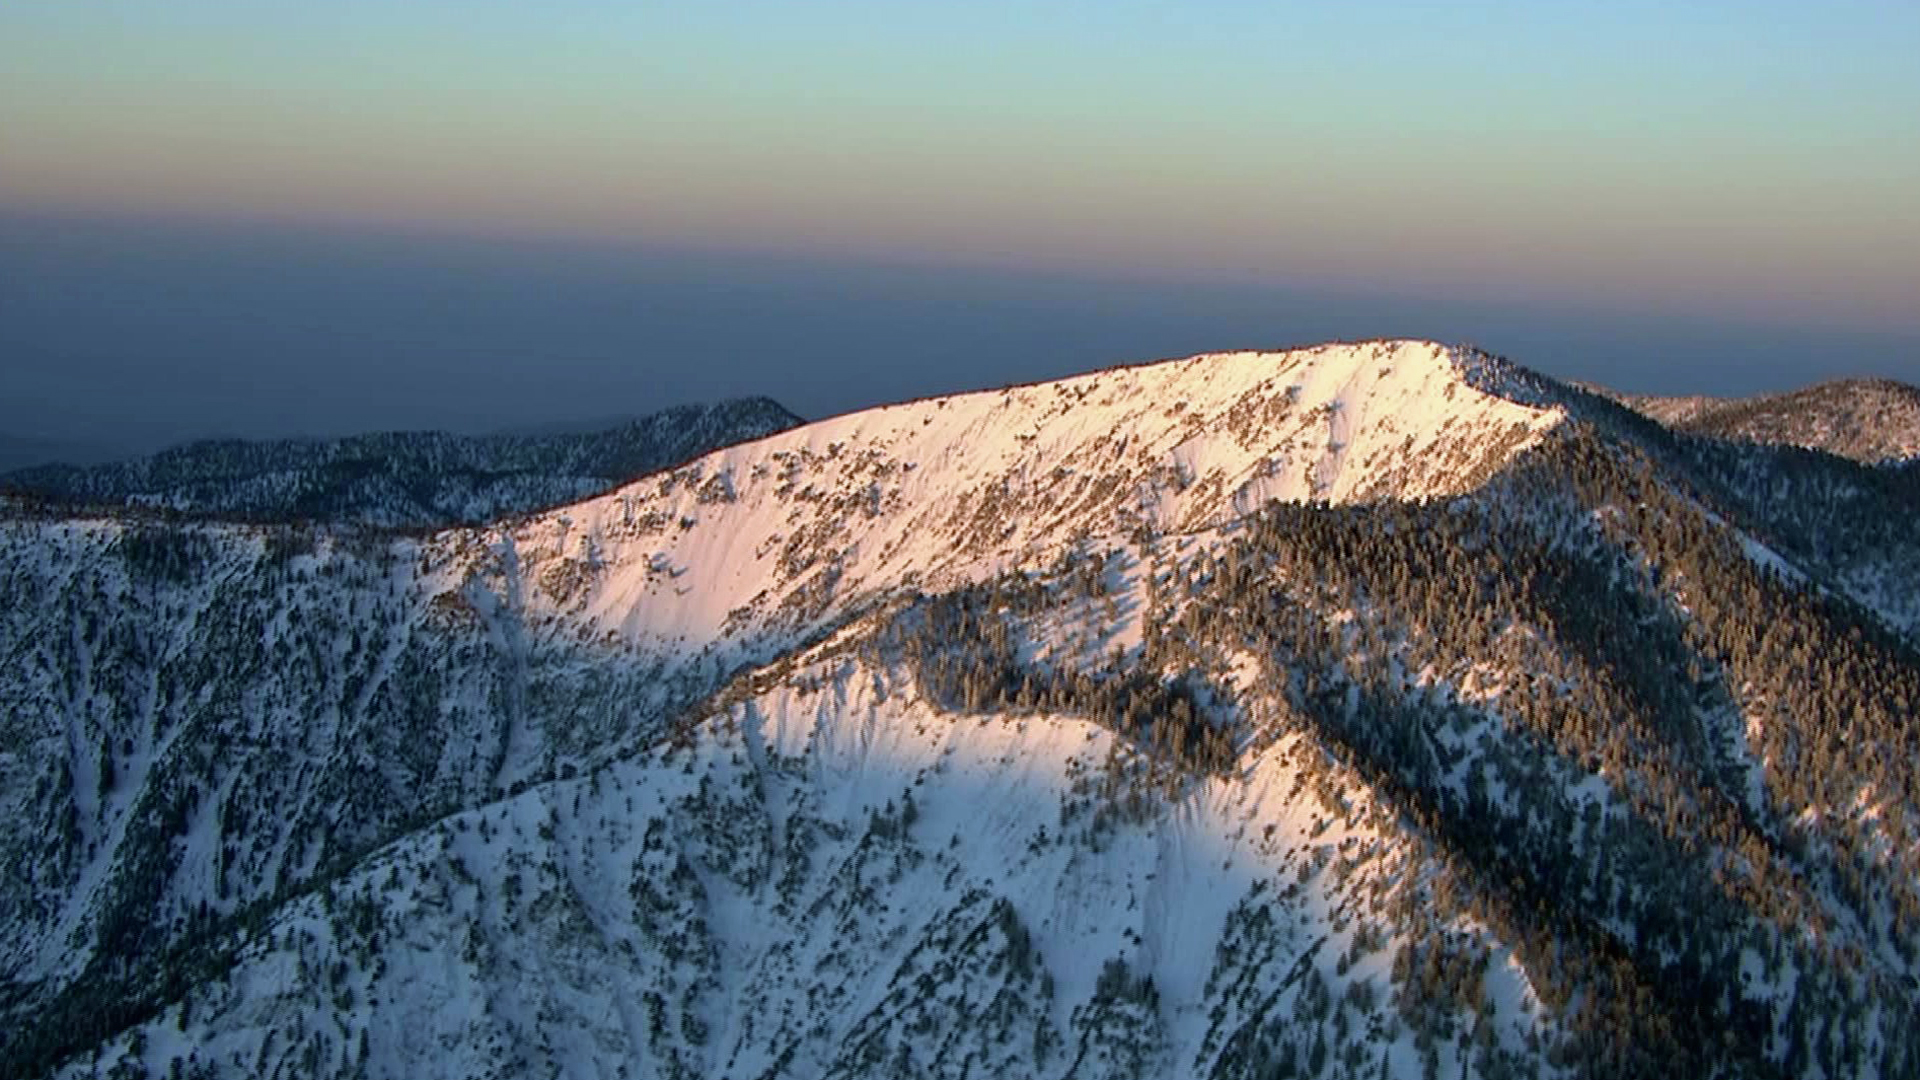 A file photo shows snow in the mountains of Southern California.